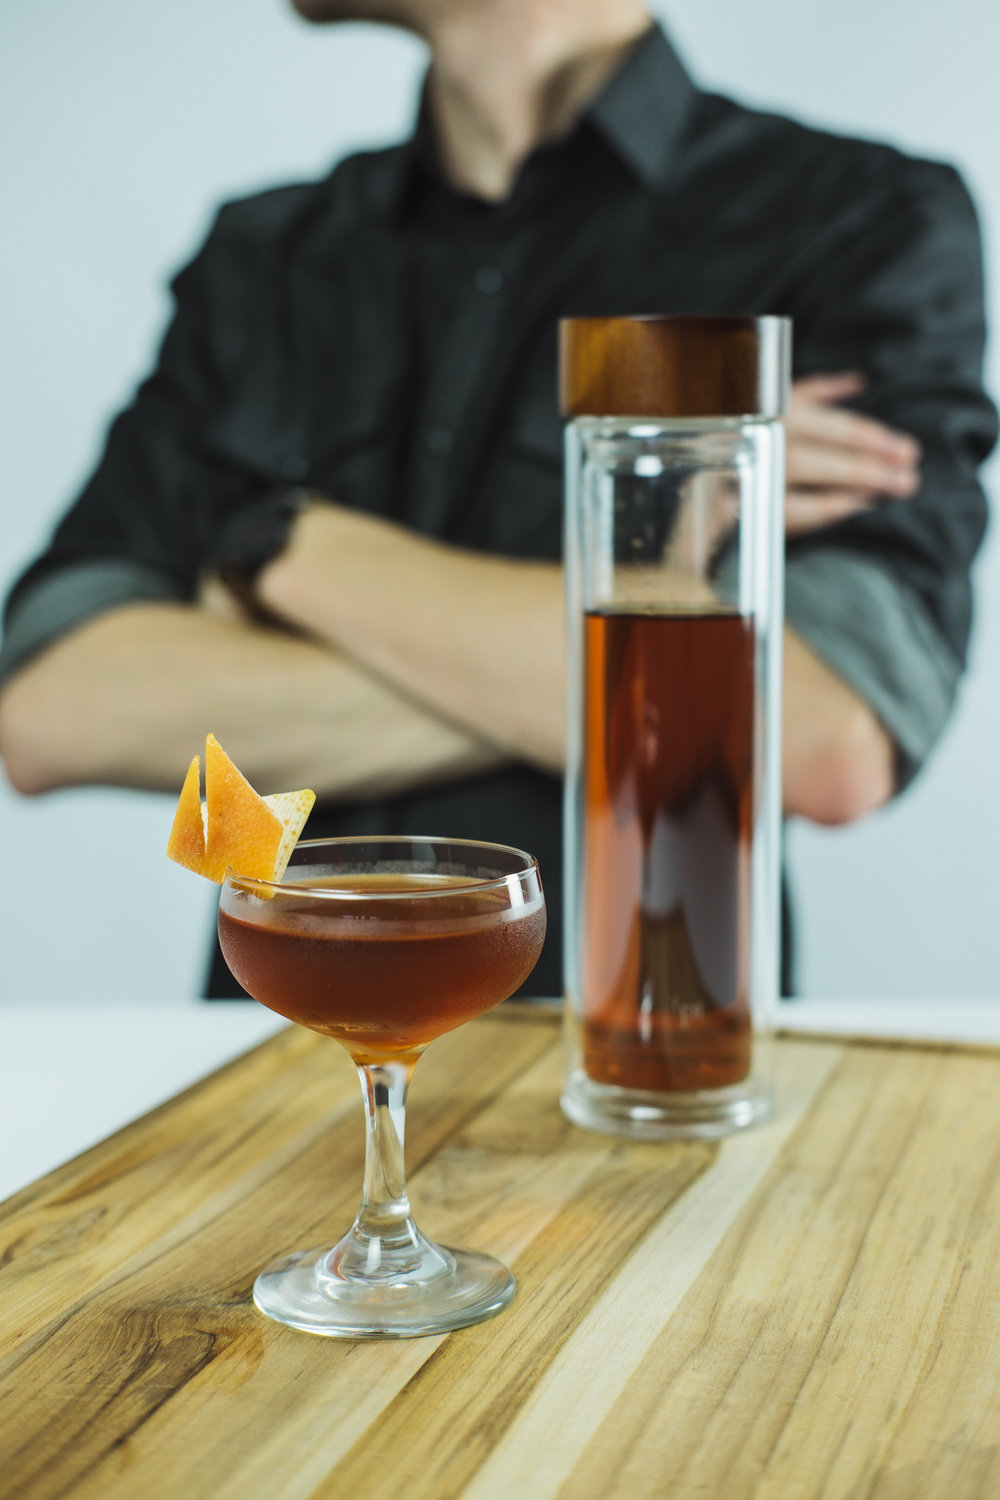 ingredients:  - 1 1/2 oz chocolate-infused reposado tequila1/2 oz mezcal1/2 oz Ancho Reyes chili liqueur2 dashes aromatic bittersA few drops of agave nectarGarnish: Orange peel